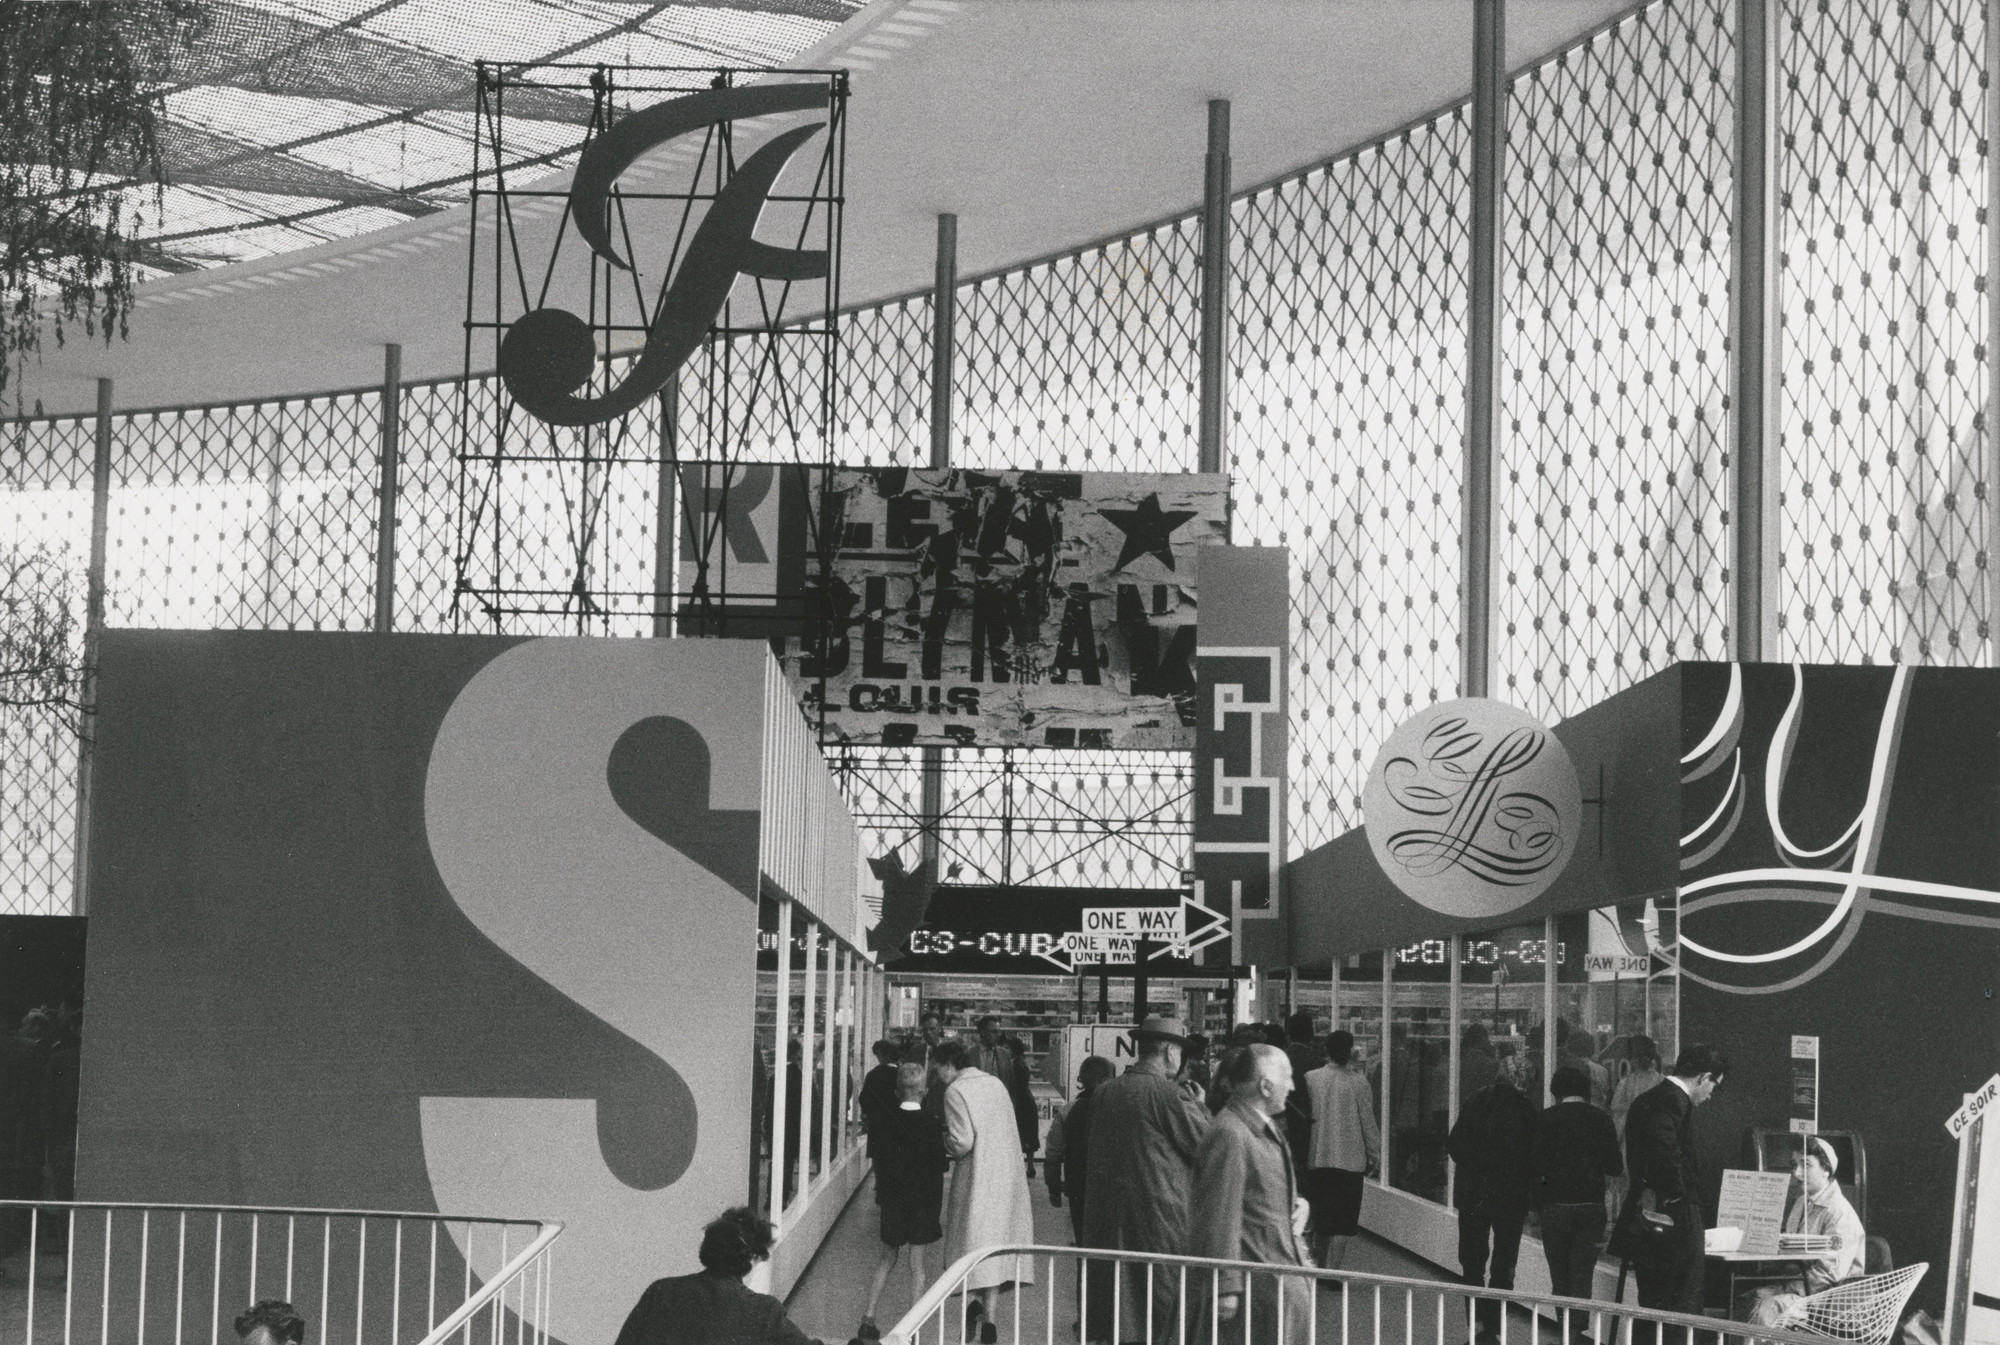 Robert Brownjohn, Ivan Chermayeff, Thomas Geismar. Brussels World Fair (View of the fair). 1958